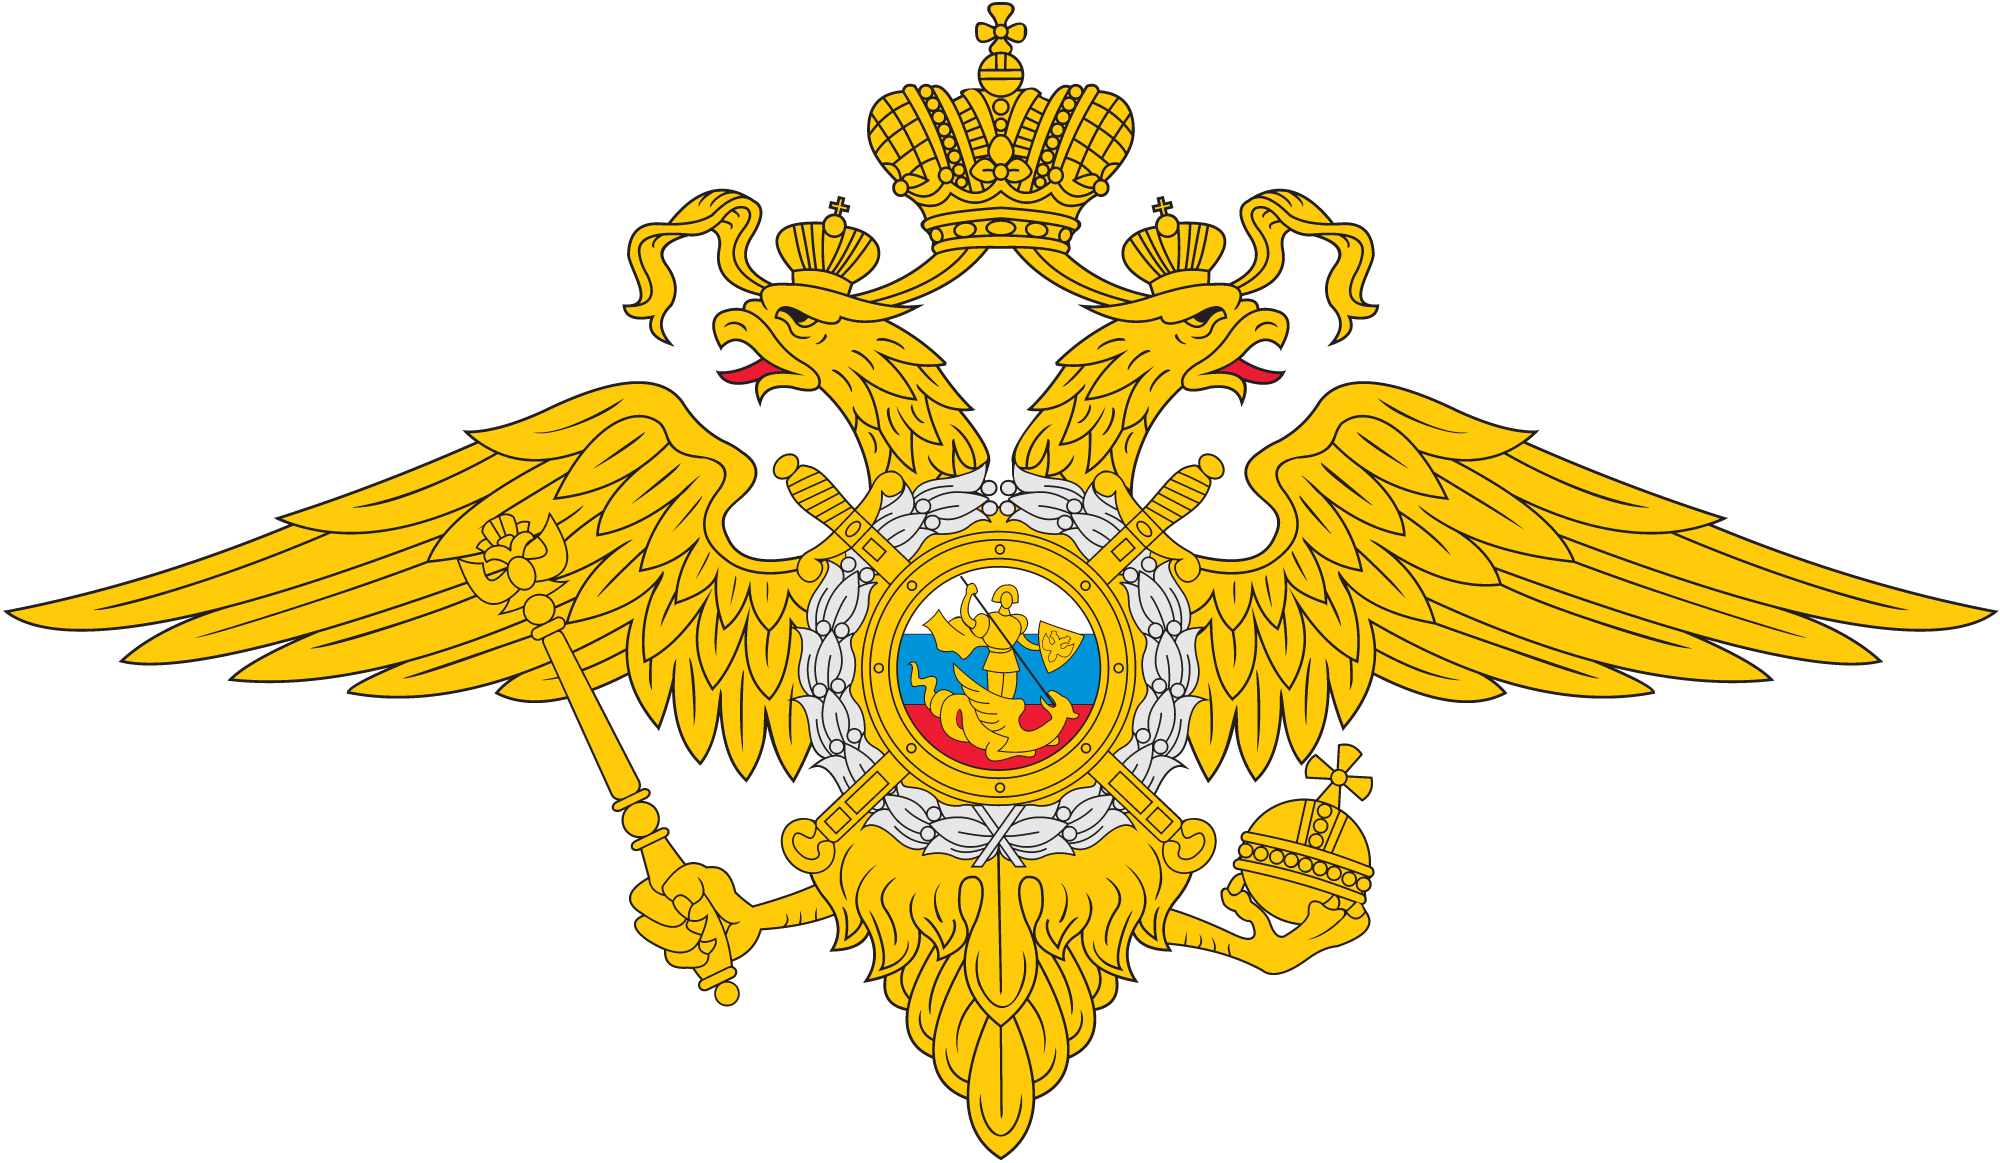 The Ministry of Internal Affairs of the Russian Federation logo